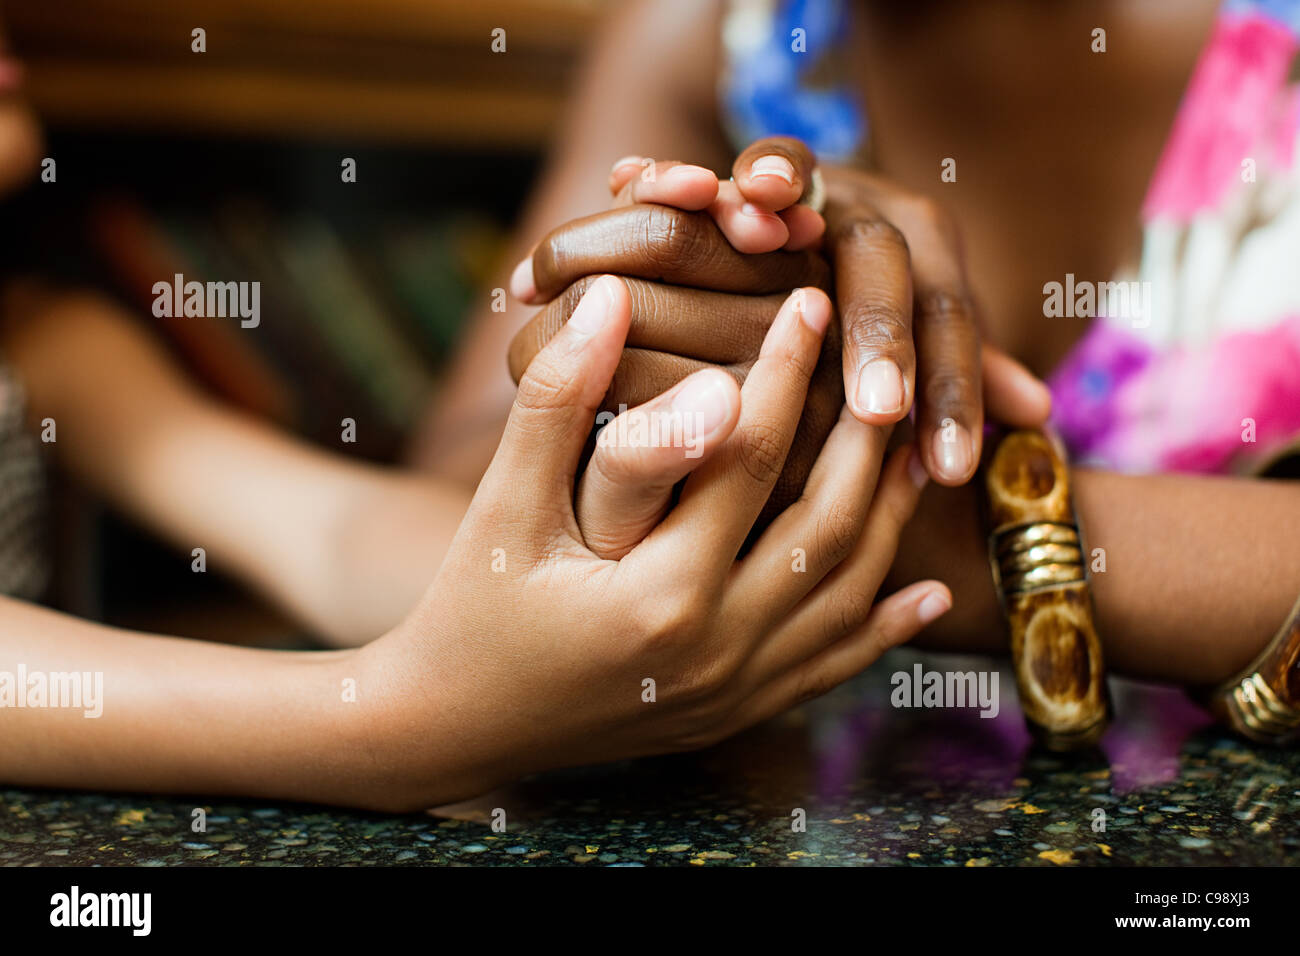 Mother and Daughter holding hands in cafe Photo Stock